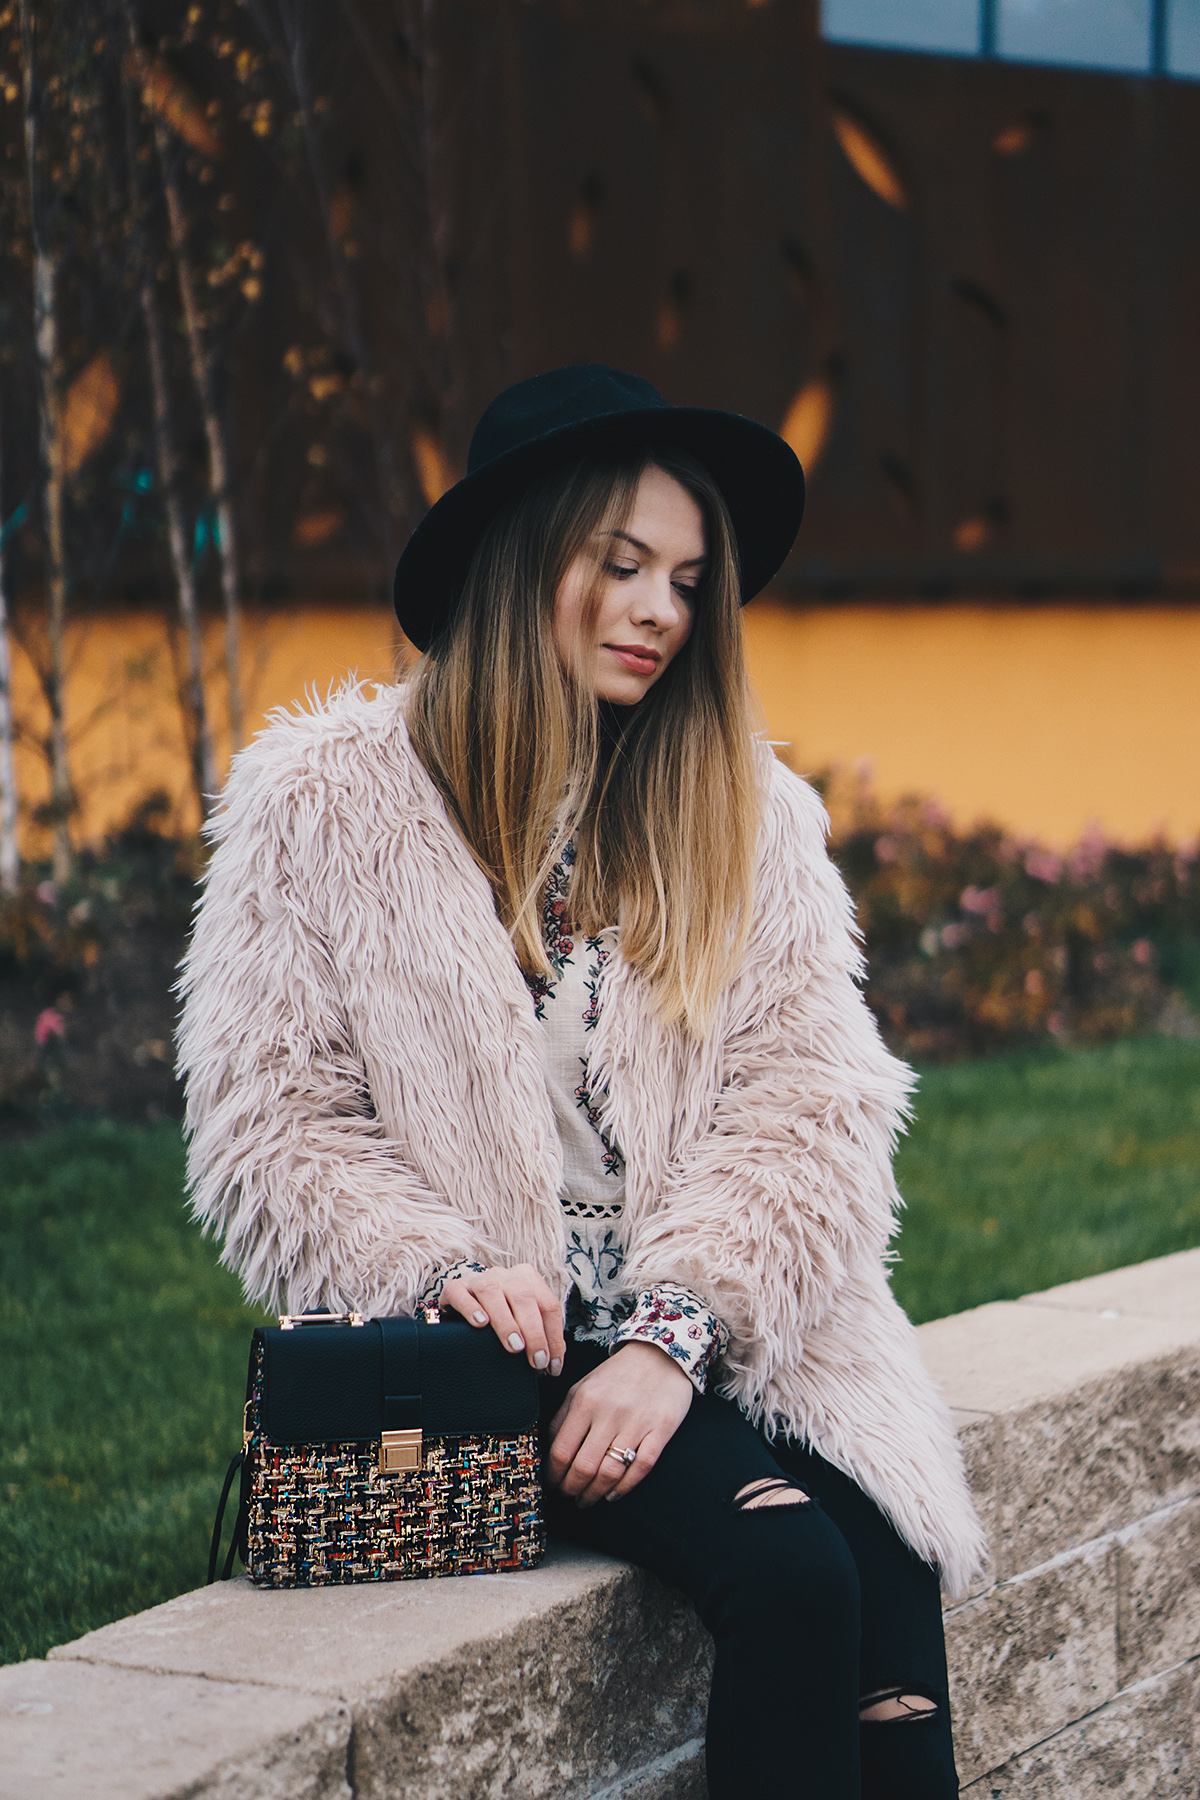 floral-embroidered-blouse-pink-fur-coat-ripped-black-jeans-brogues-winter-outfit-5